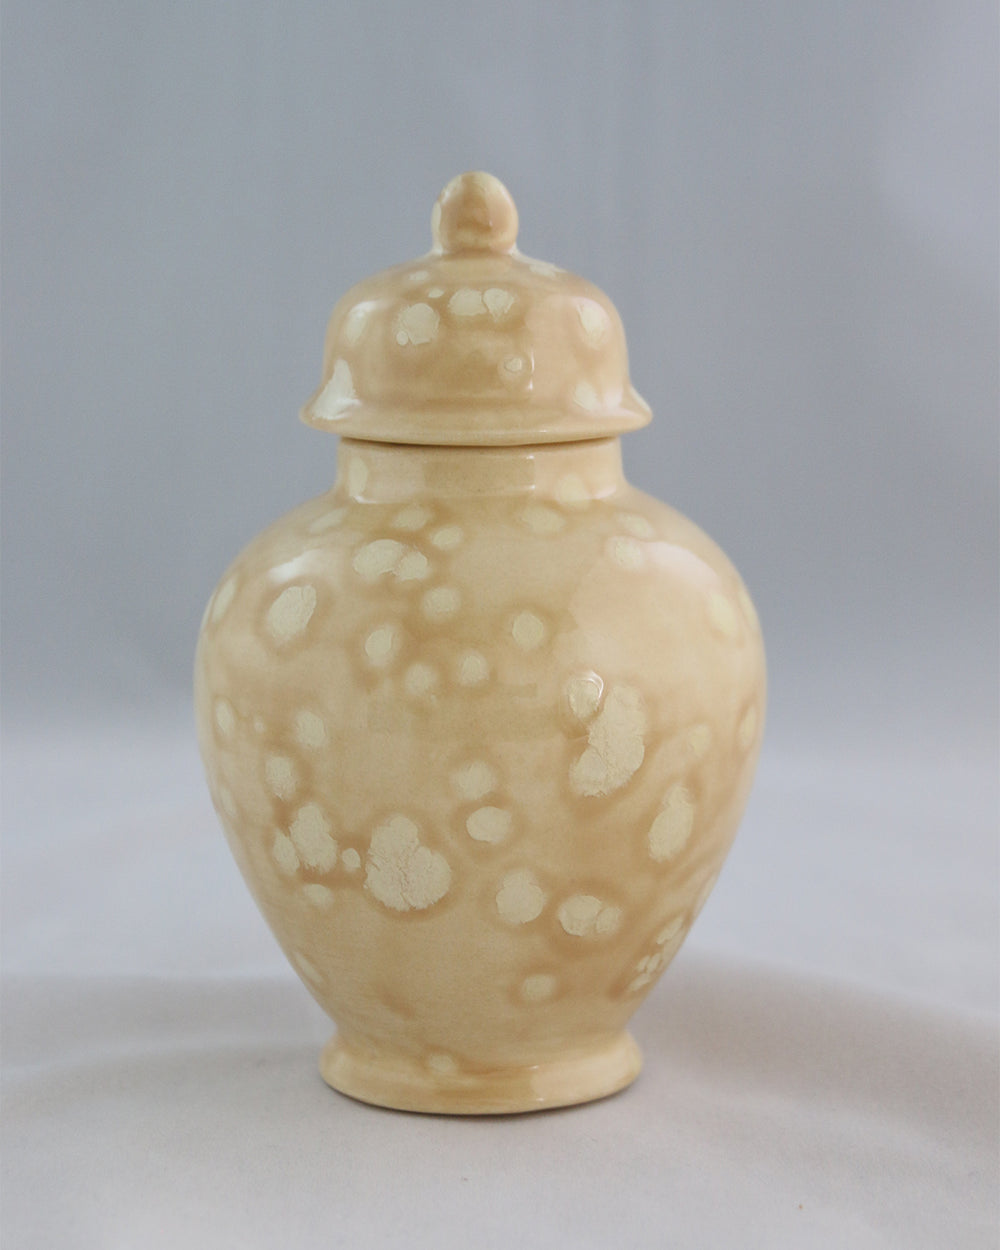 Hancrafted Ceramic Urn - Savannah - XSmall